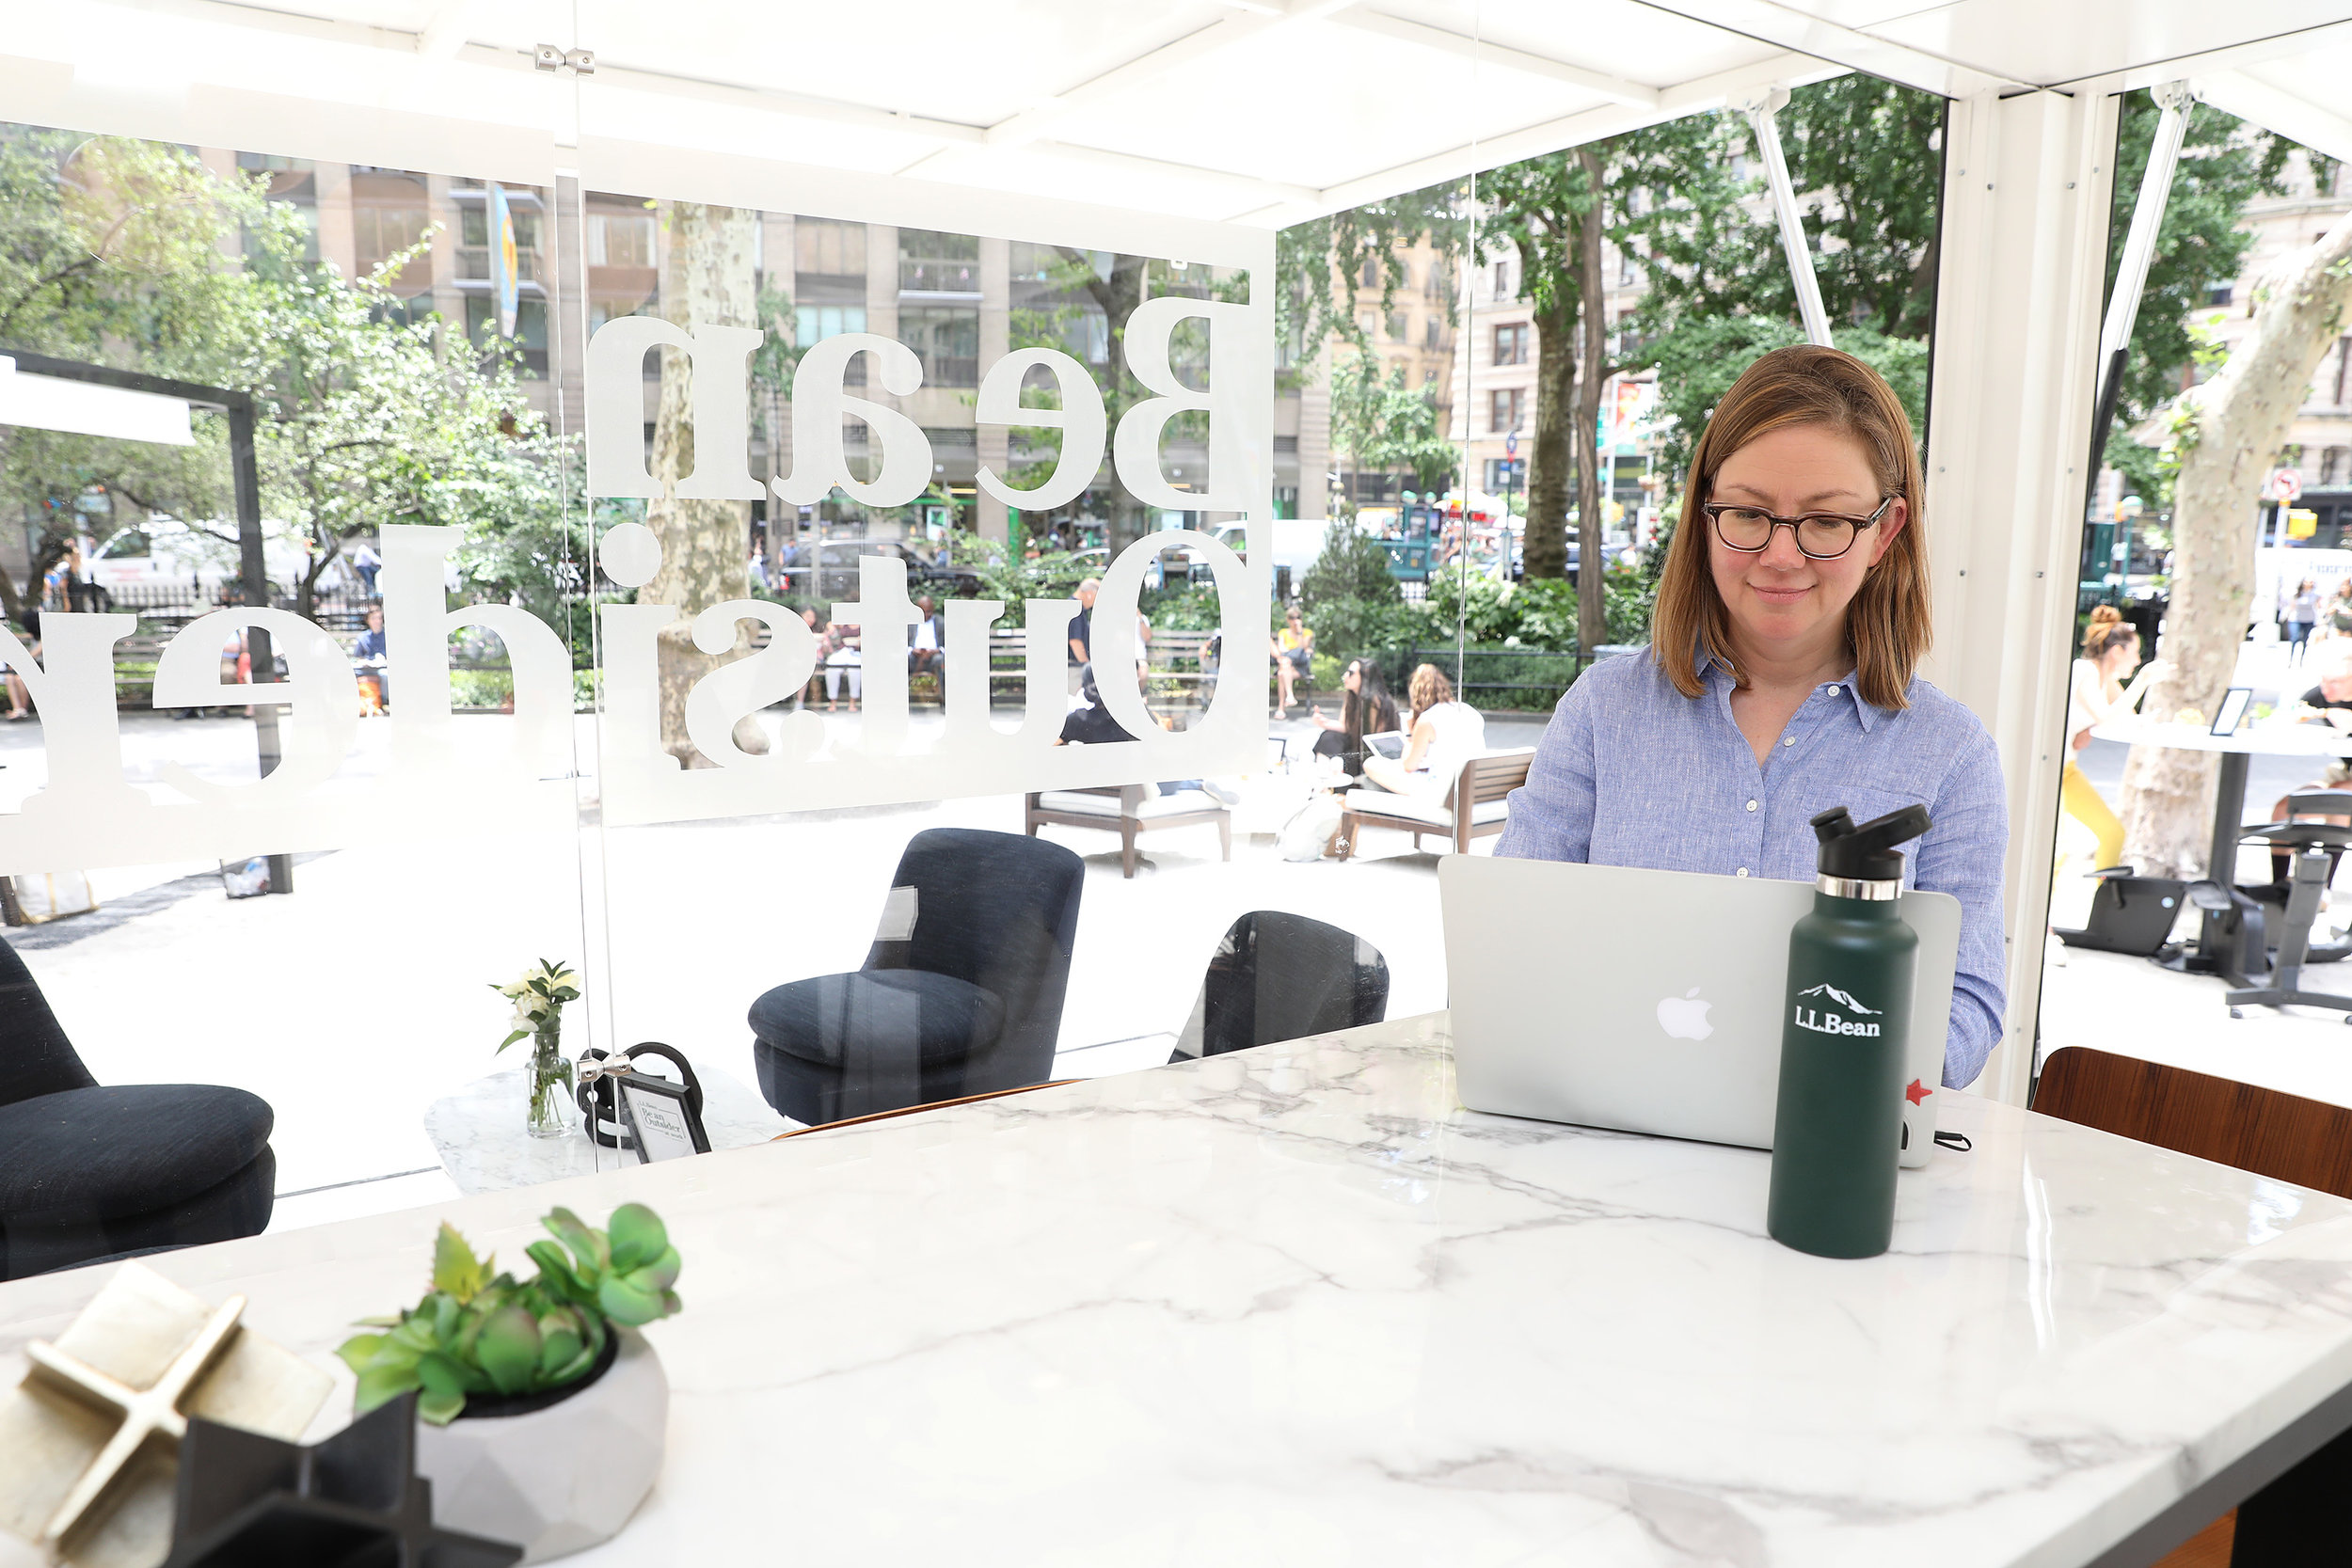 Workplace strategist and  Healthy Workplace  author Leigh Stringer partnered with L.L. Bean on the Be an Outsider at Work coworking popup.